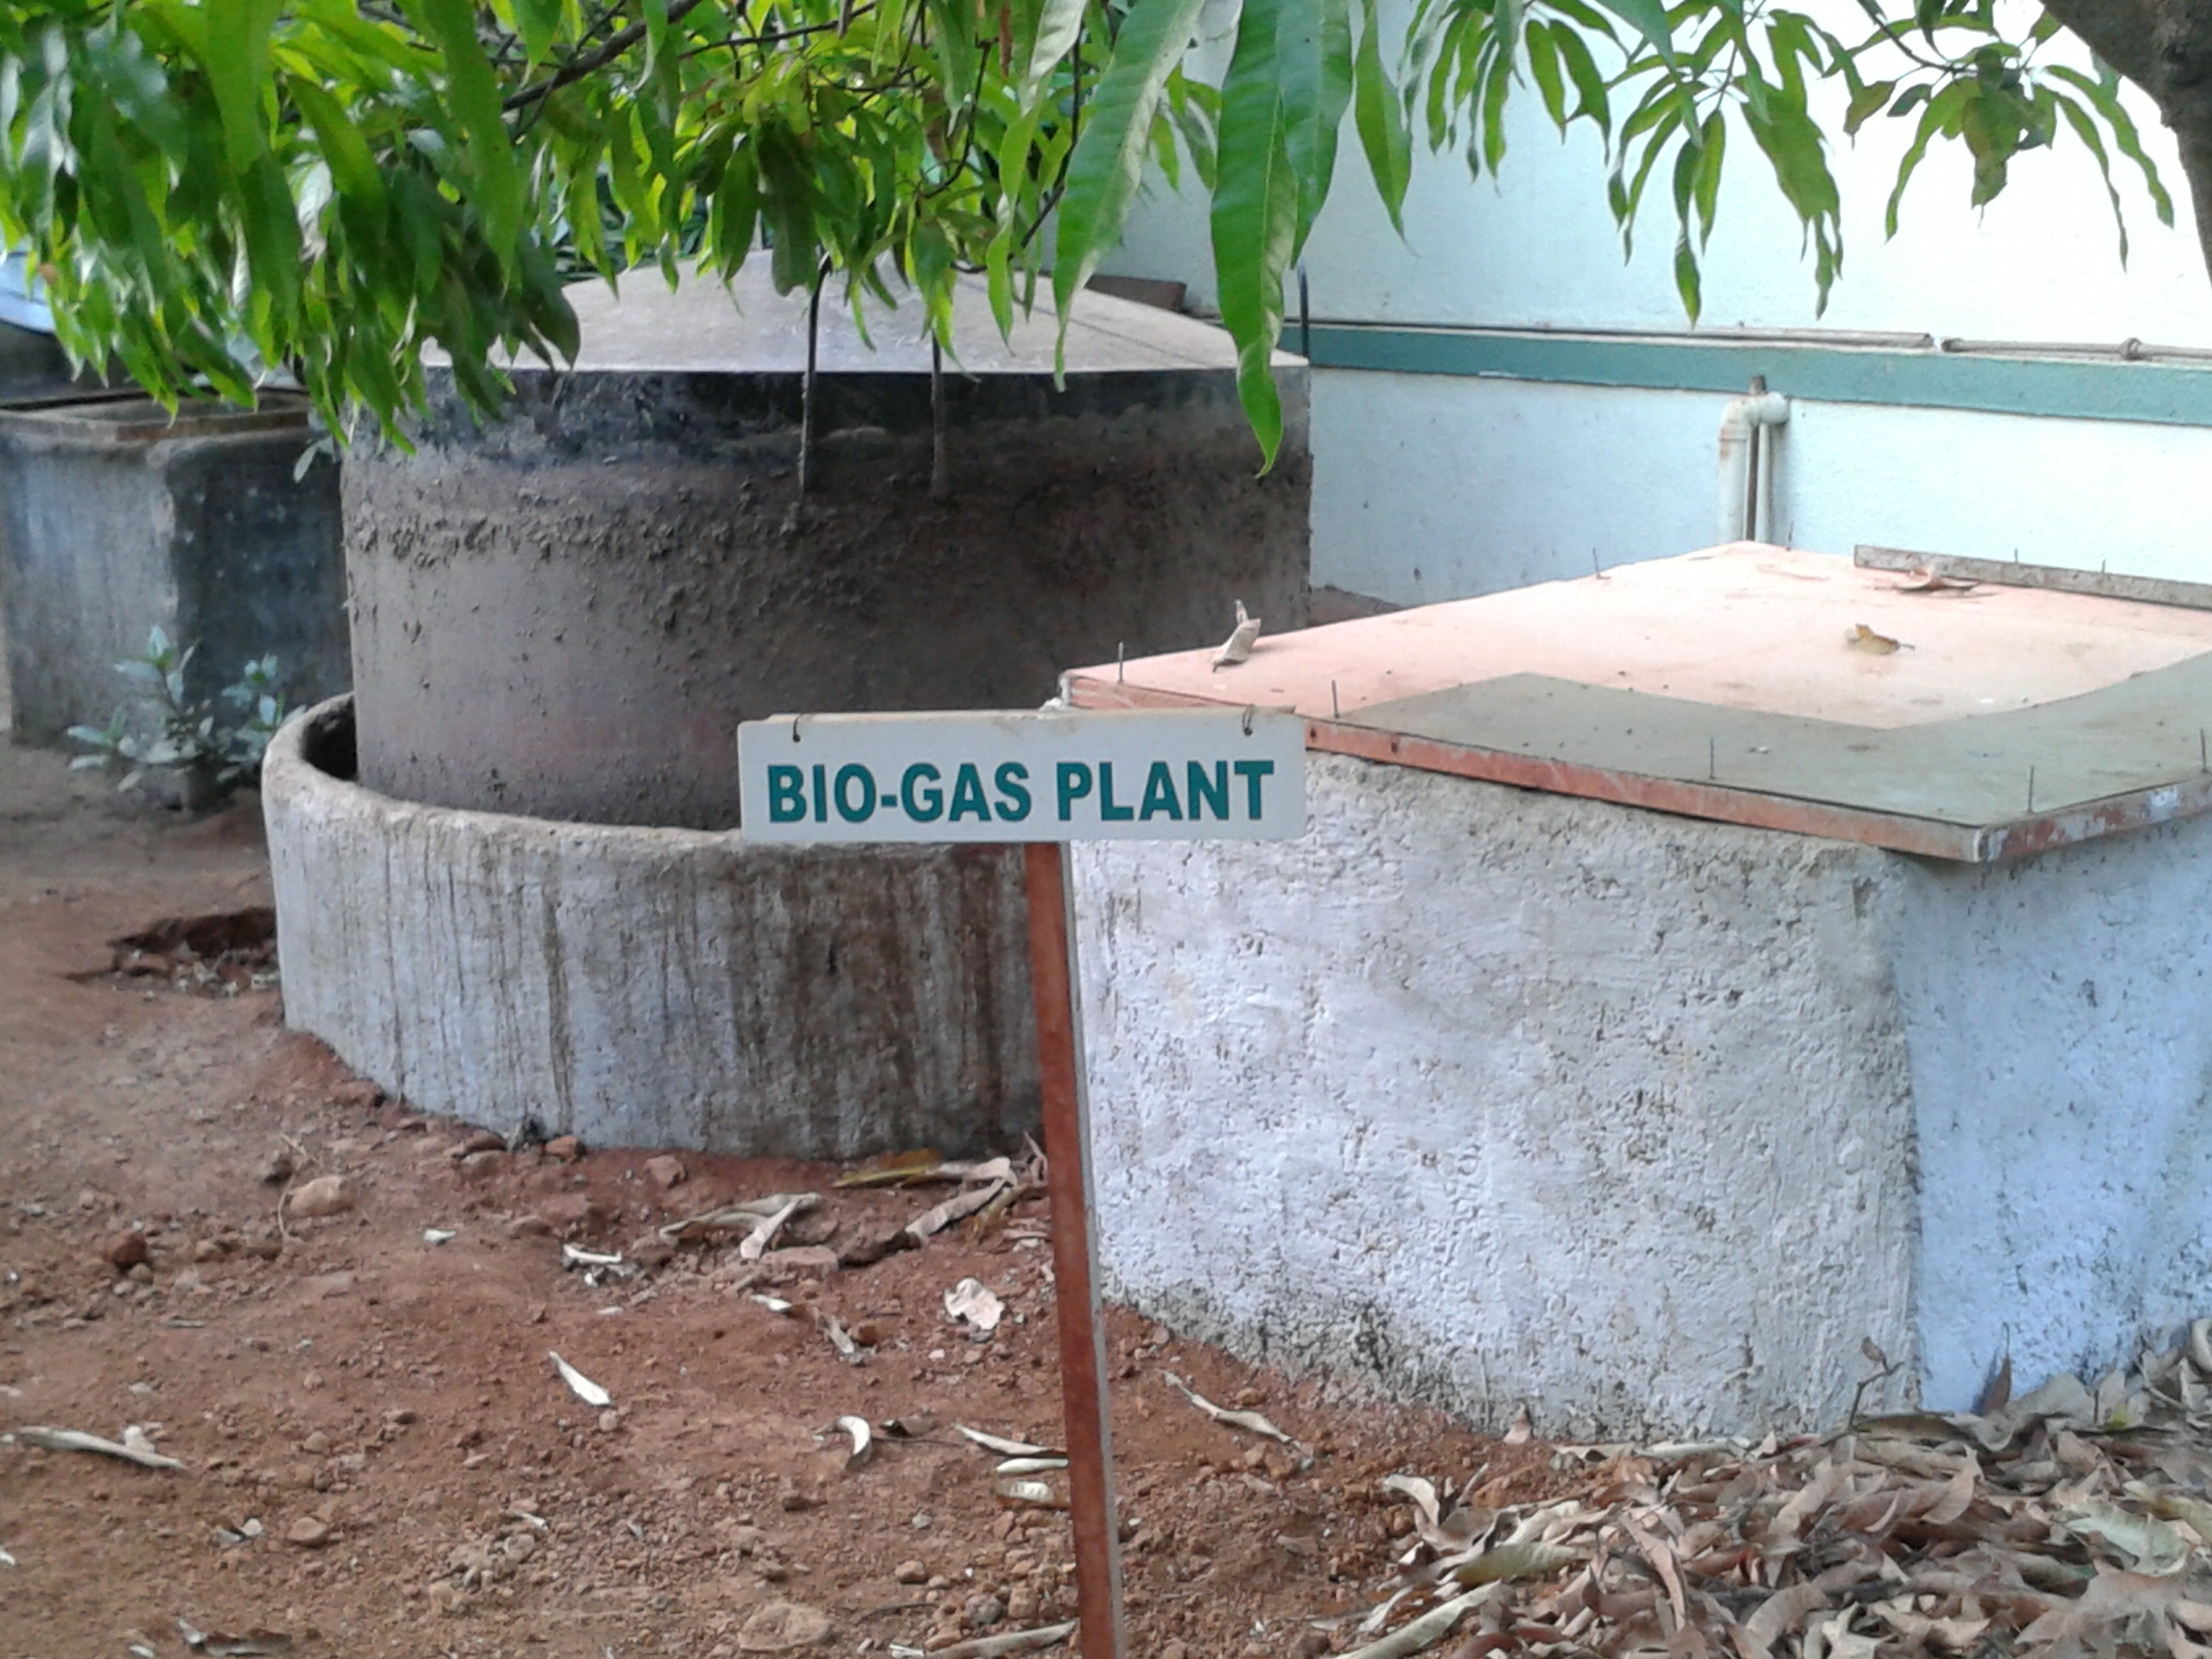 BIO-GAS PLANT in Dirghayu Farms